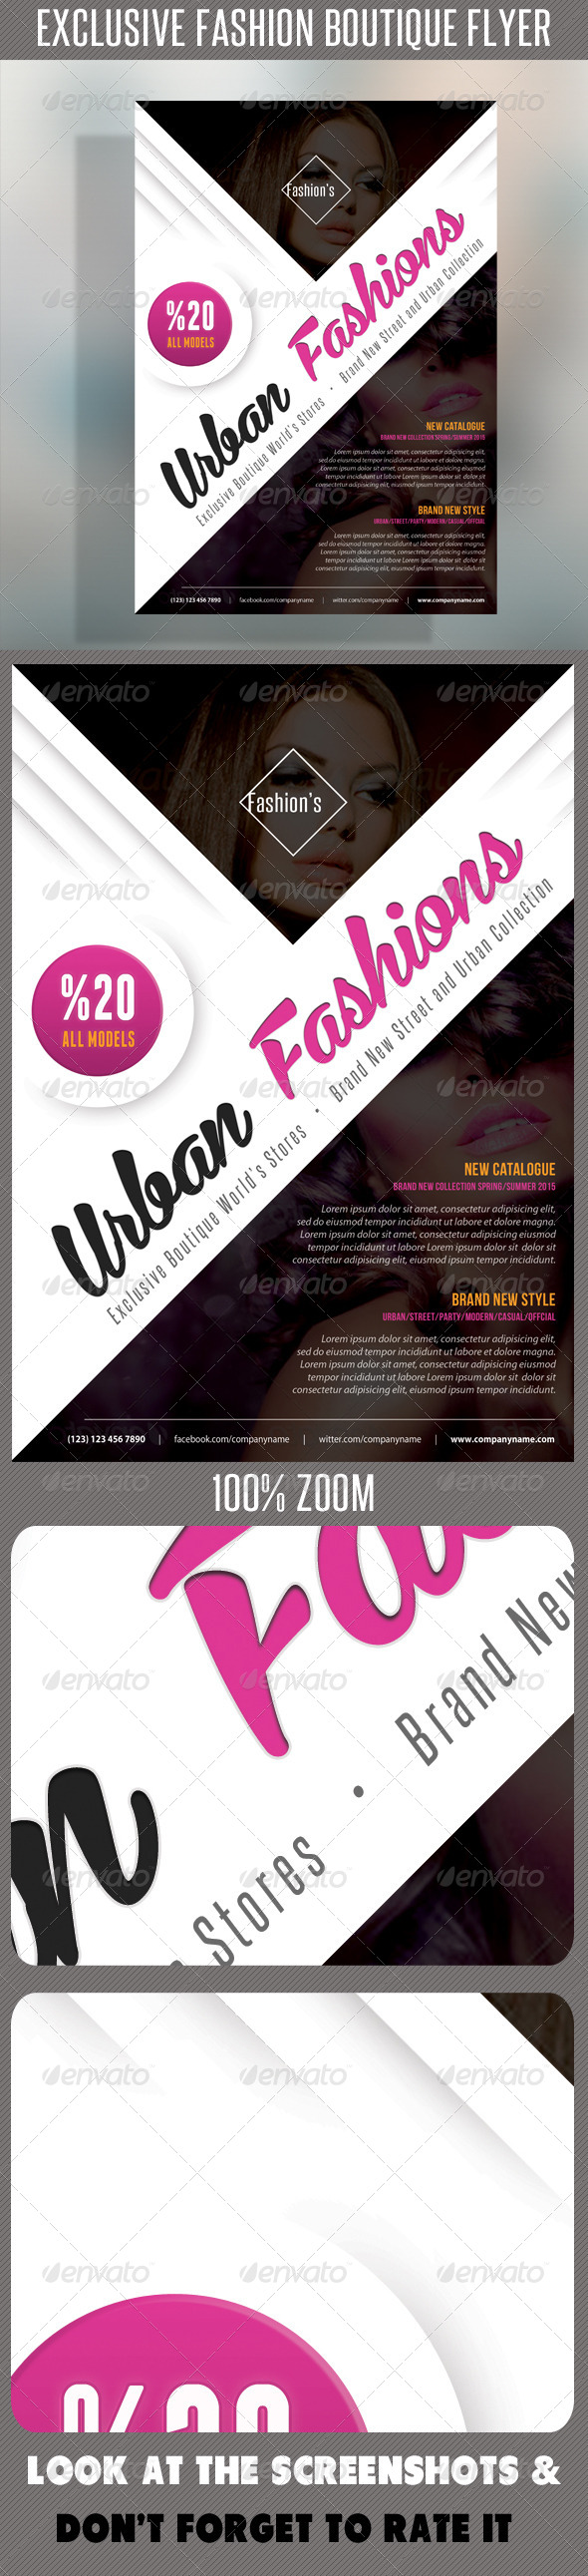 Fashion Product Flyer 52 - Flyers Print Templates